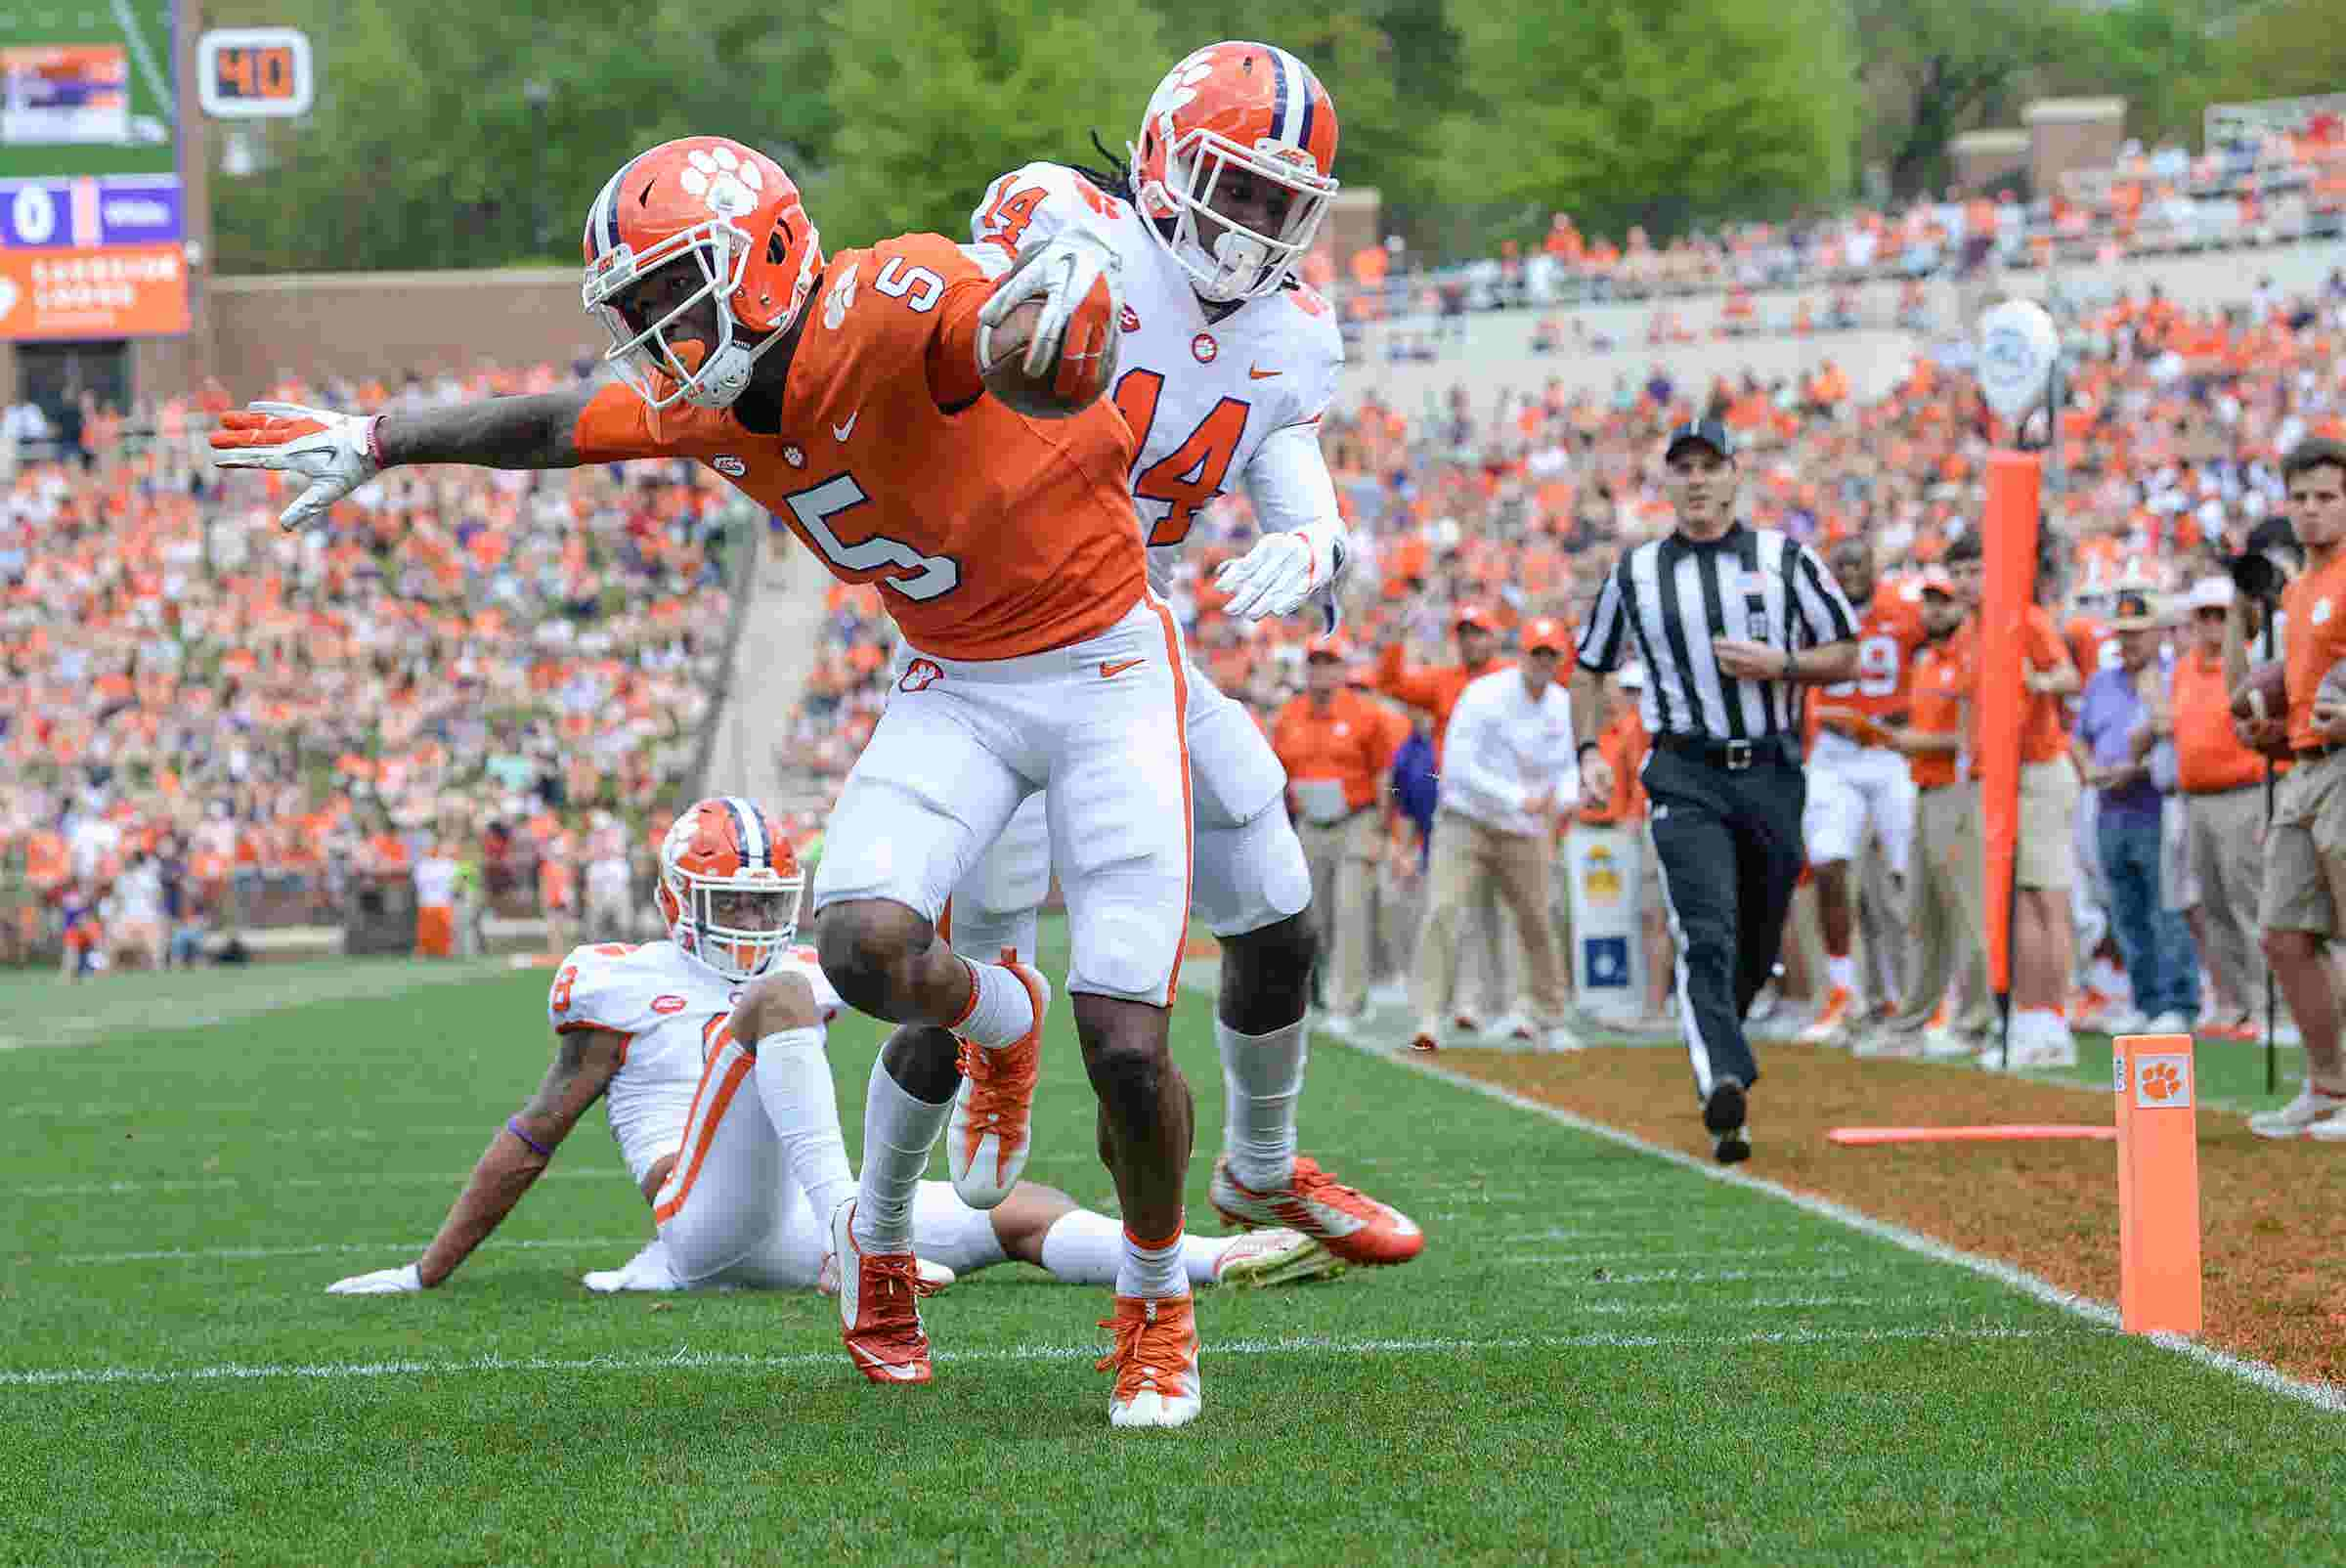 Clemson WR Tee Higgins bulked up to take the next step this season a23949756